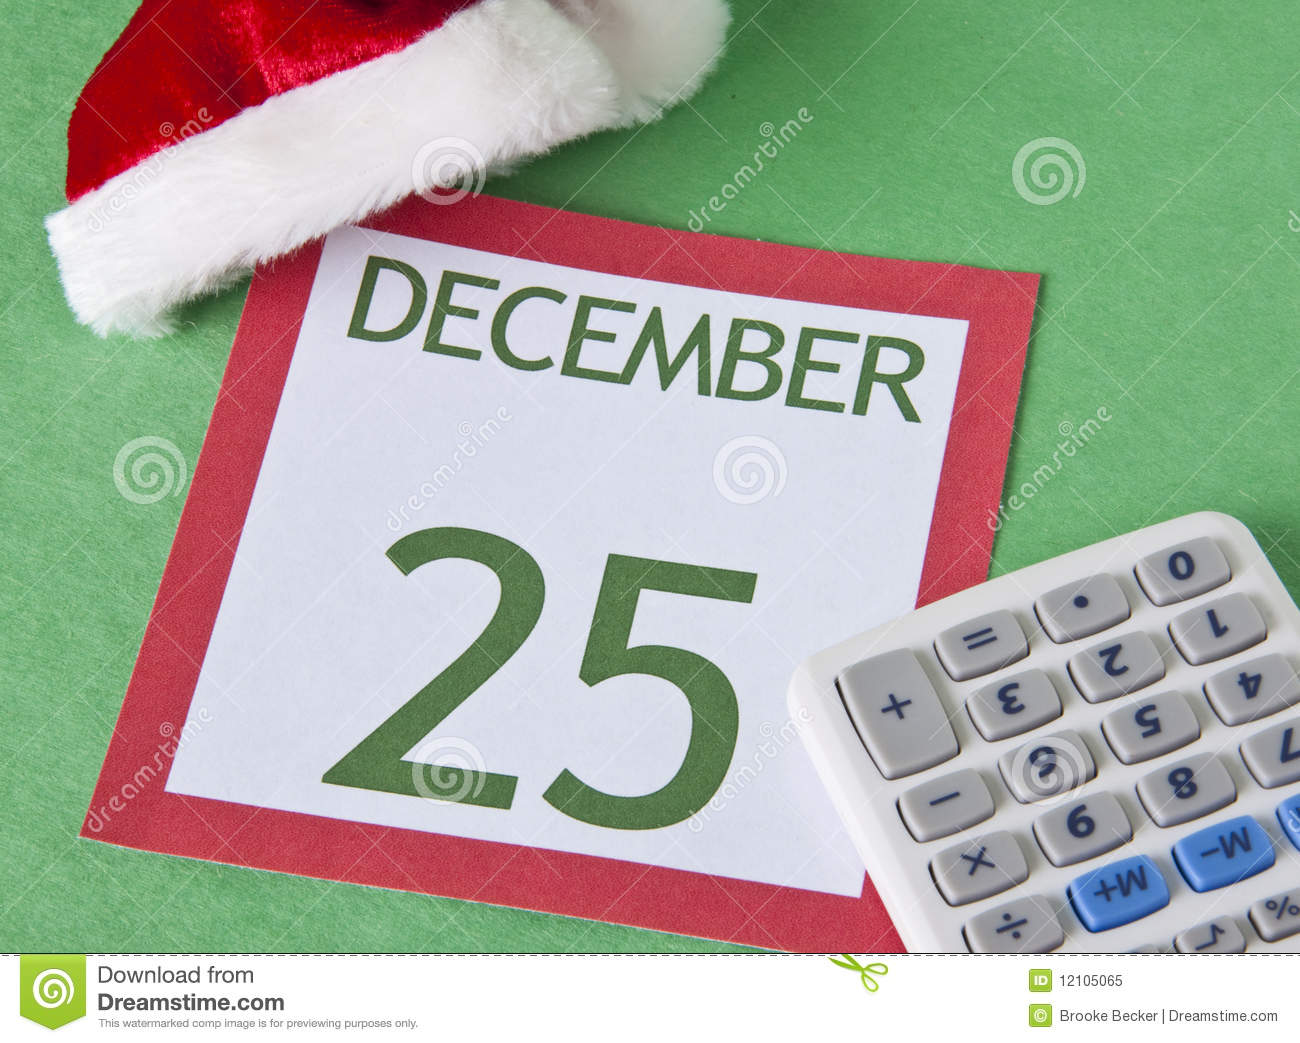 christmas on a budget stock image image of spend finances 12105065